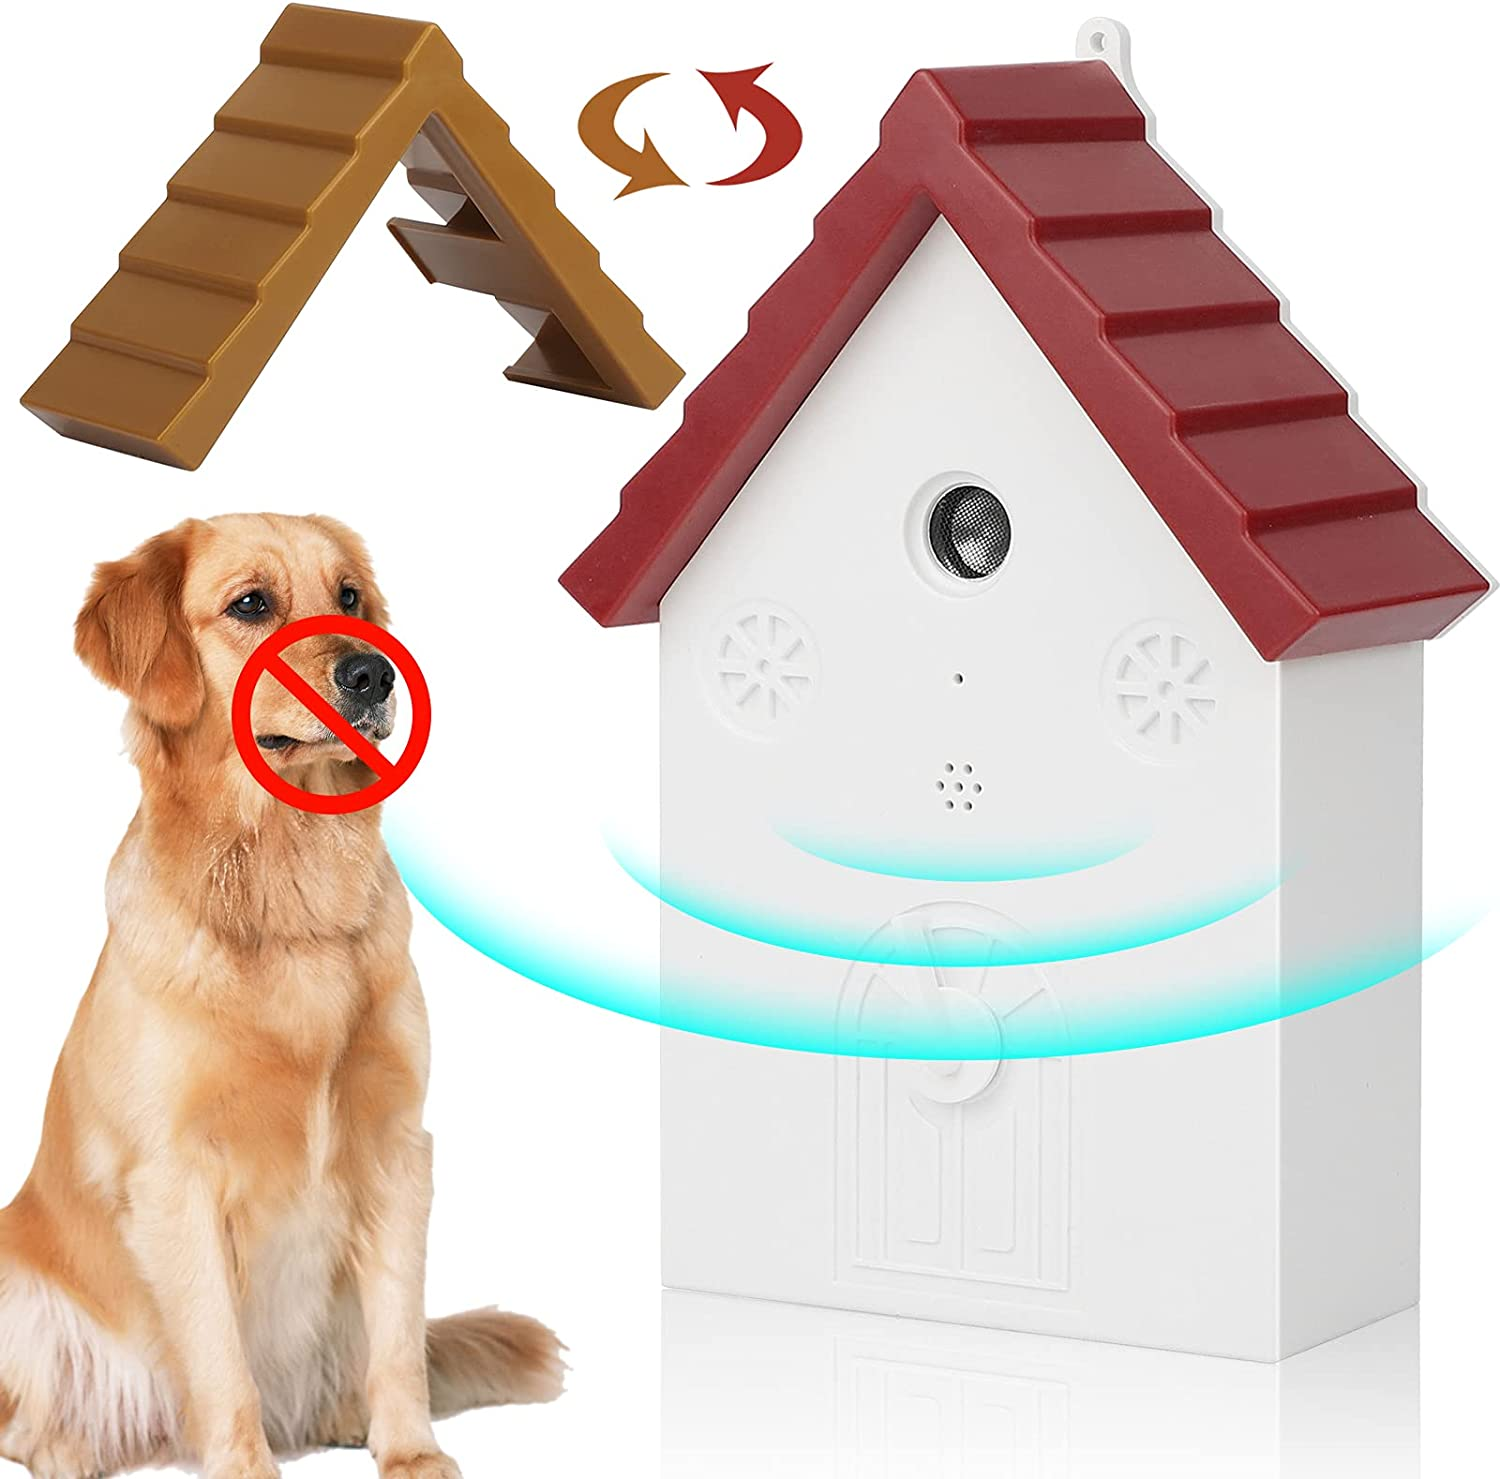 Ultrasonic Dog Barking Deterrent, Barking Control, Anti-Barking Device, Three-Frequency Non-Barking Control Device to Prevent Dog Barking, Outdoor Electronic pet Training Products